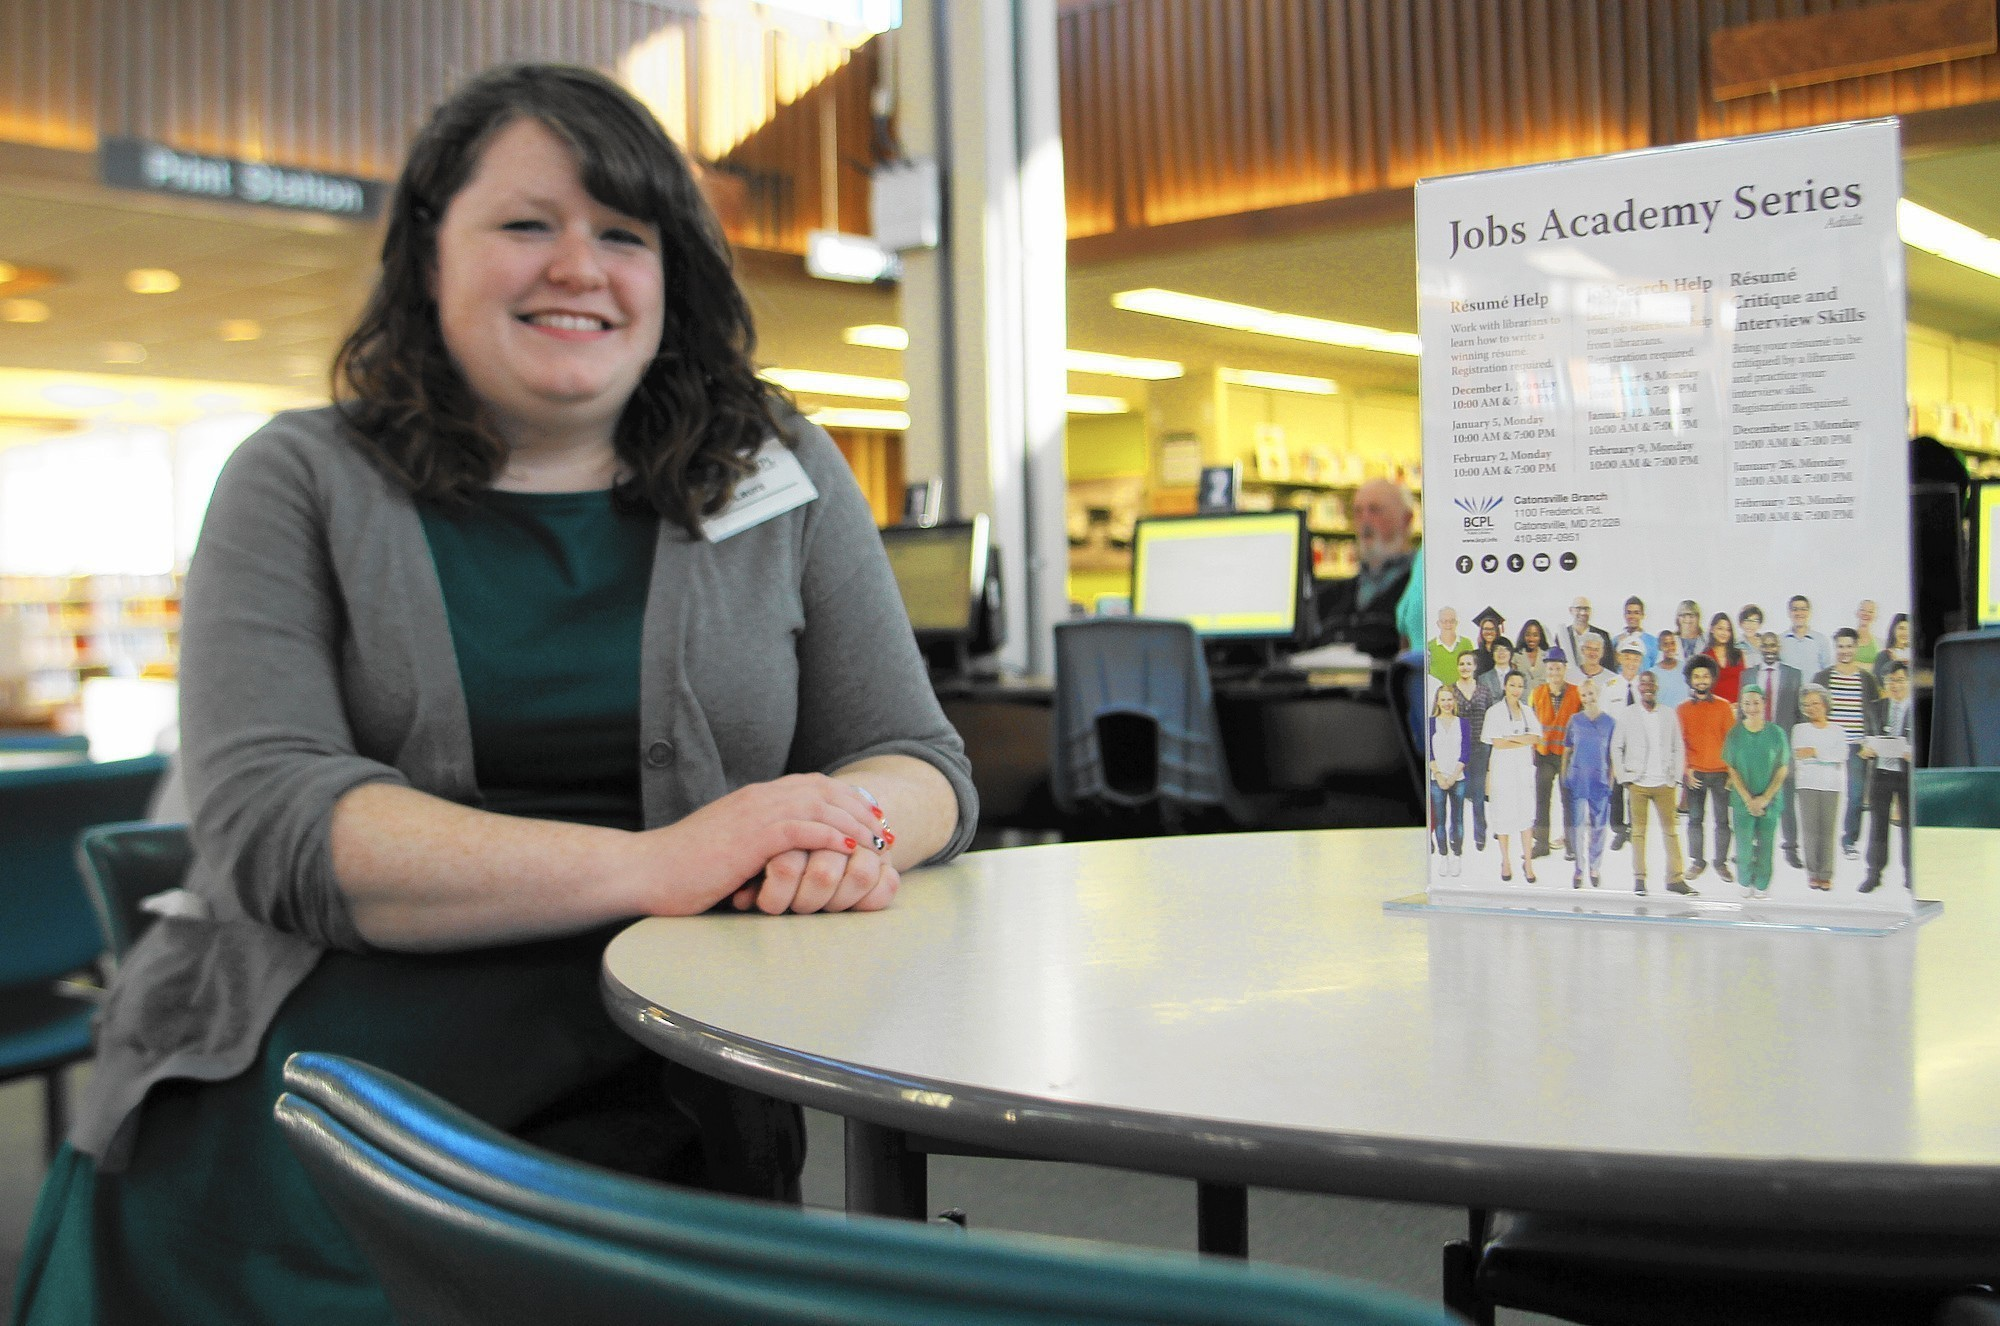 catonsville public library offers new job help program baltimore sun